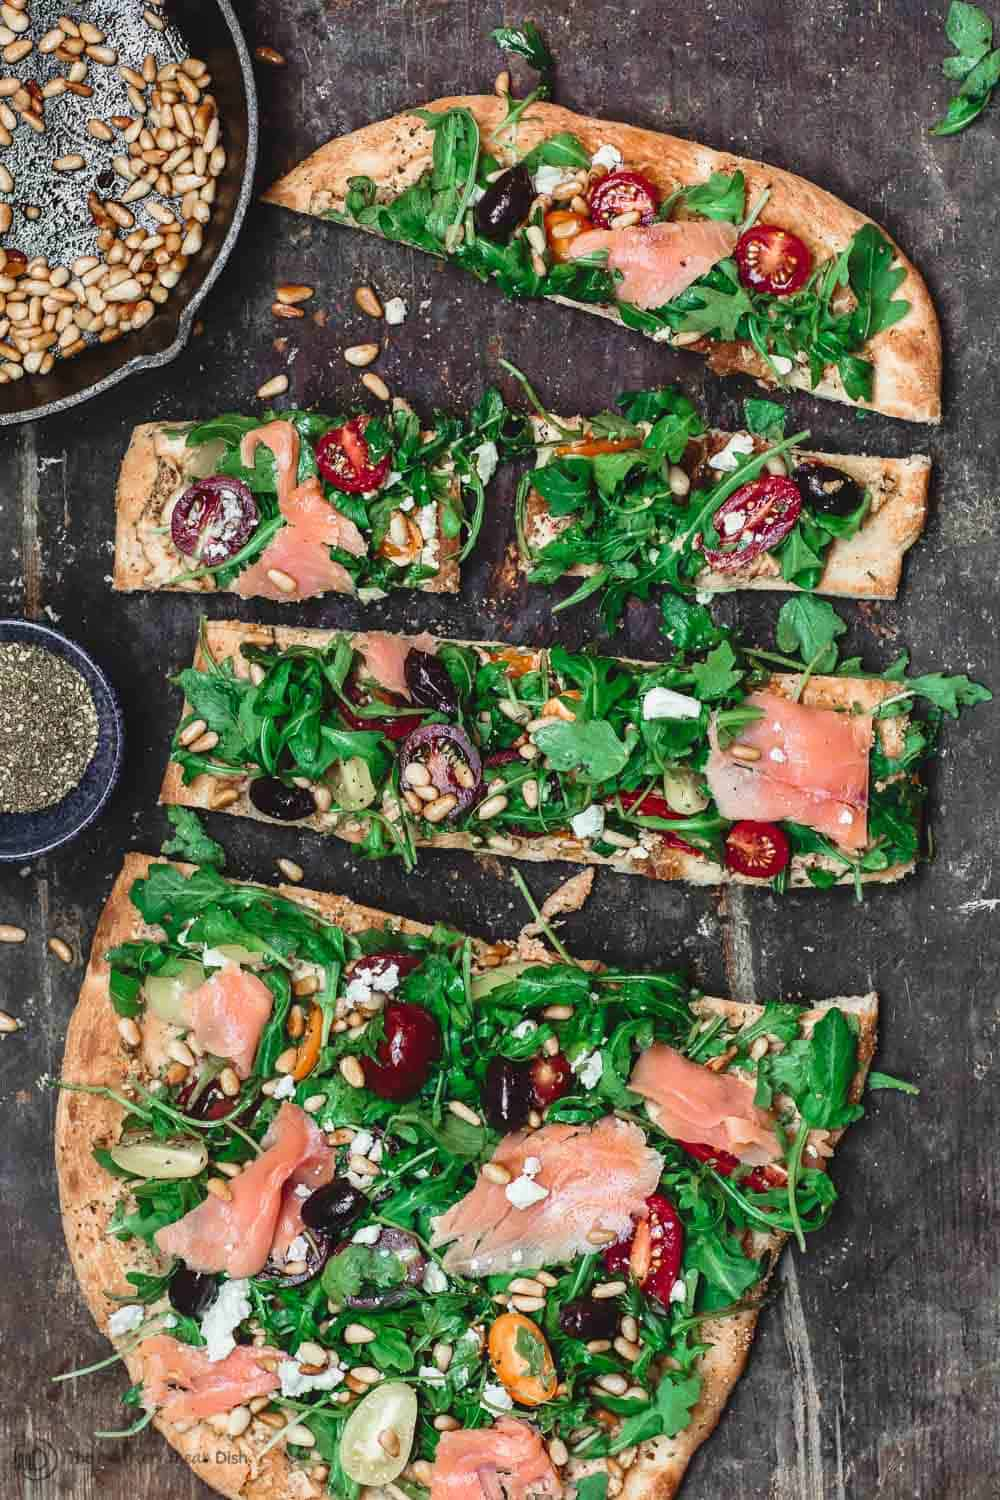 Sliced Flatbread with arugula and smoked salmon to serve as appetizer